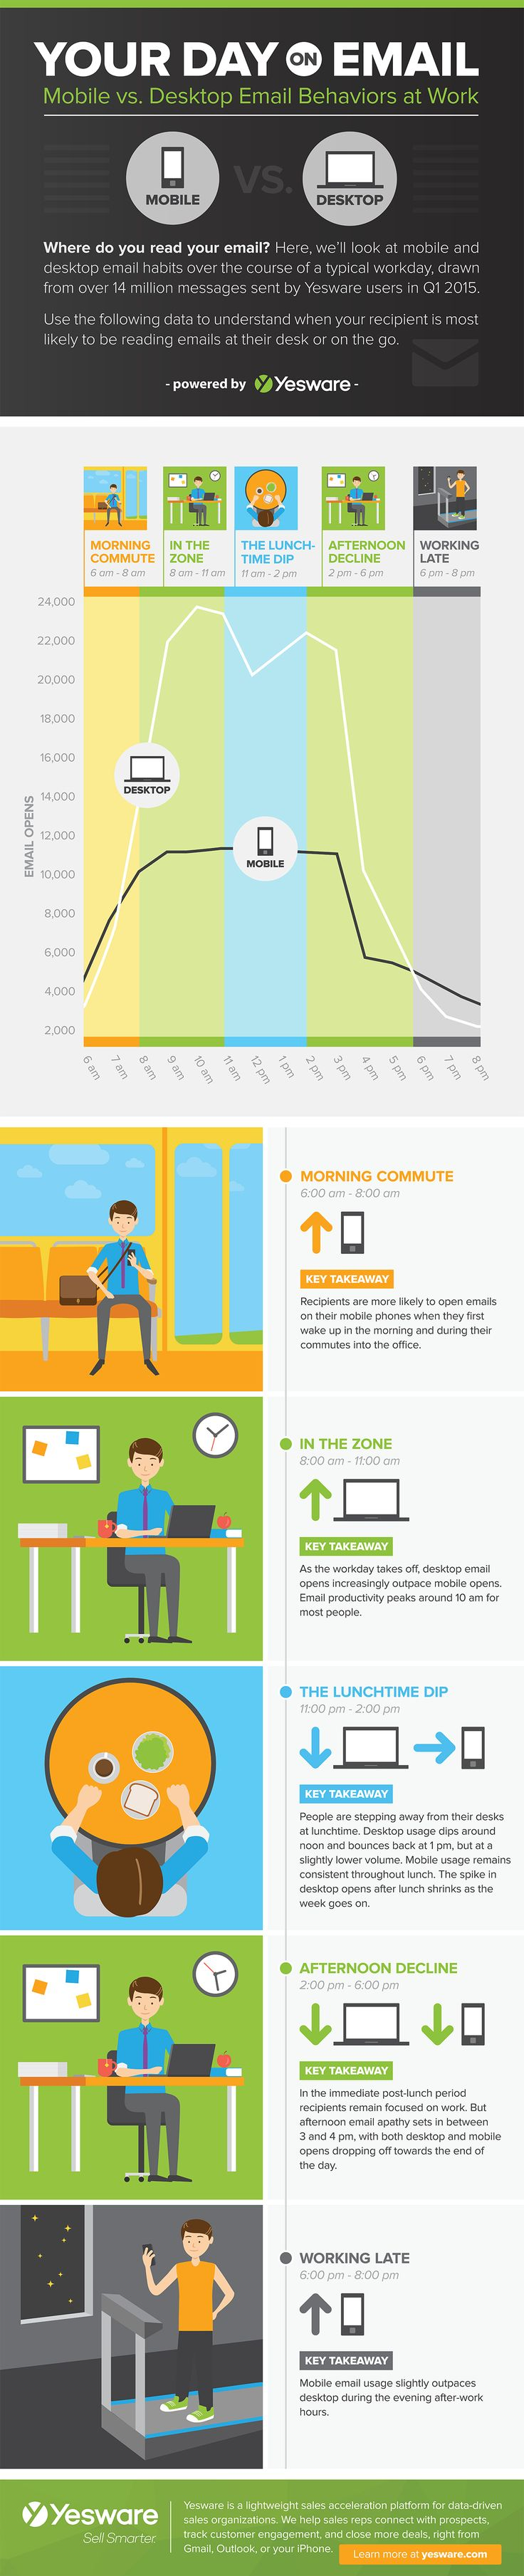 Uncategorized/telecharger skype gratuit pour windows - Mobile Vs Desktop Email Behavior At Work Infographic Marketing Emailmarketing